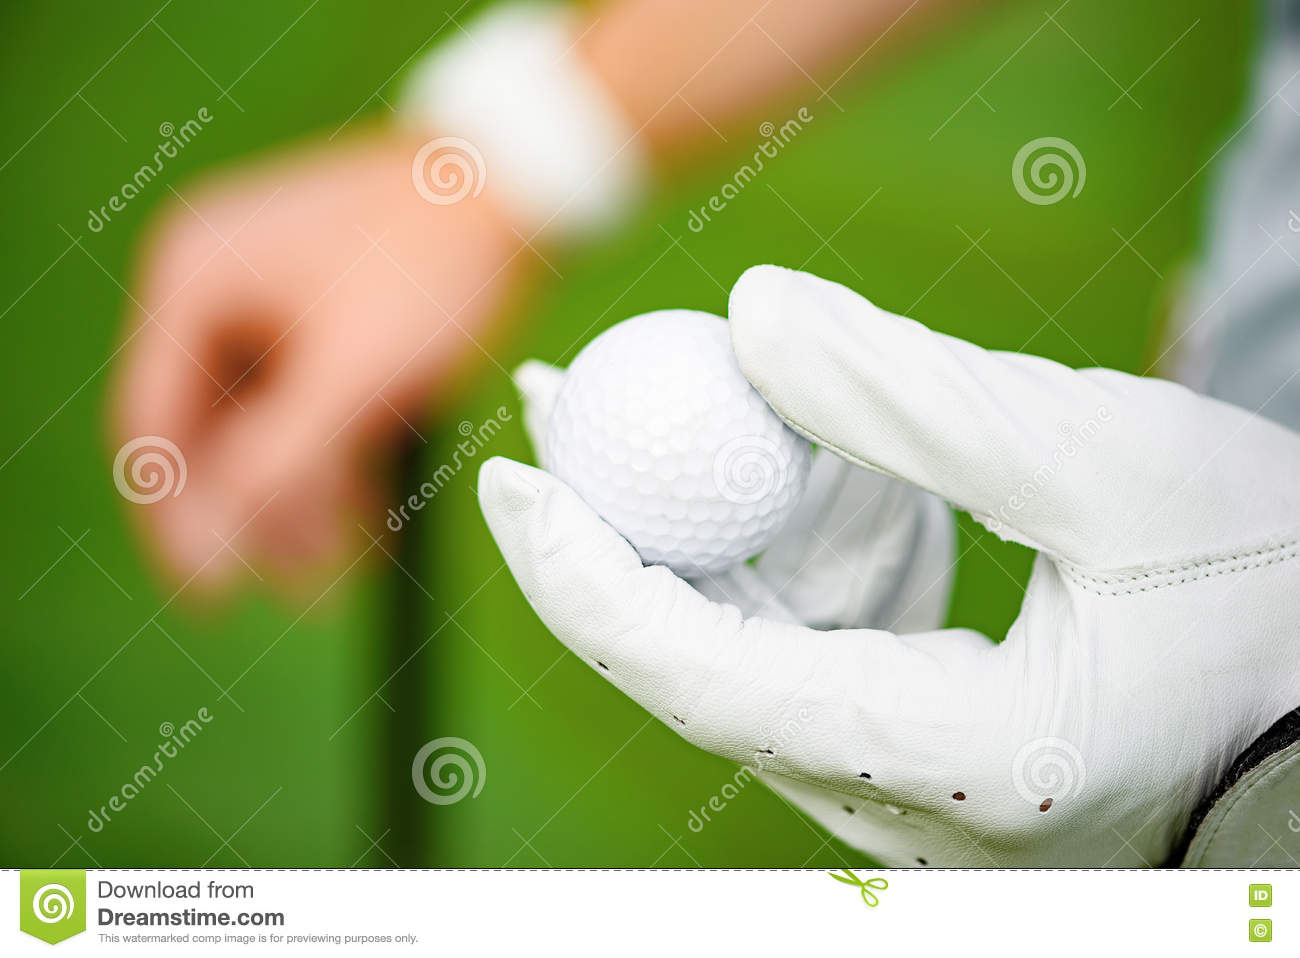 Holding golf ball on hand